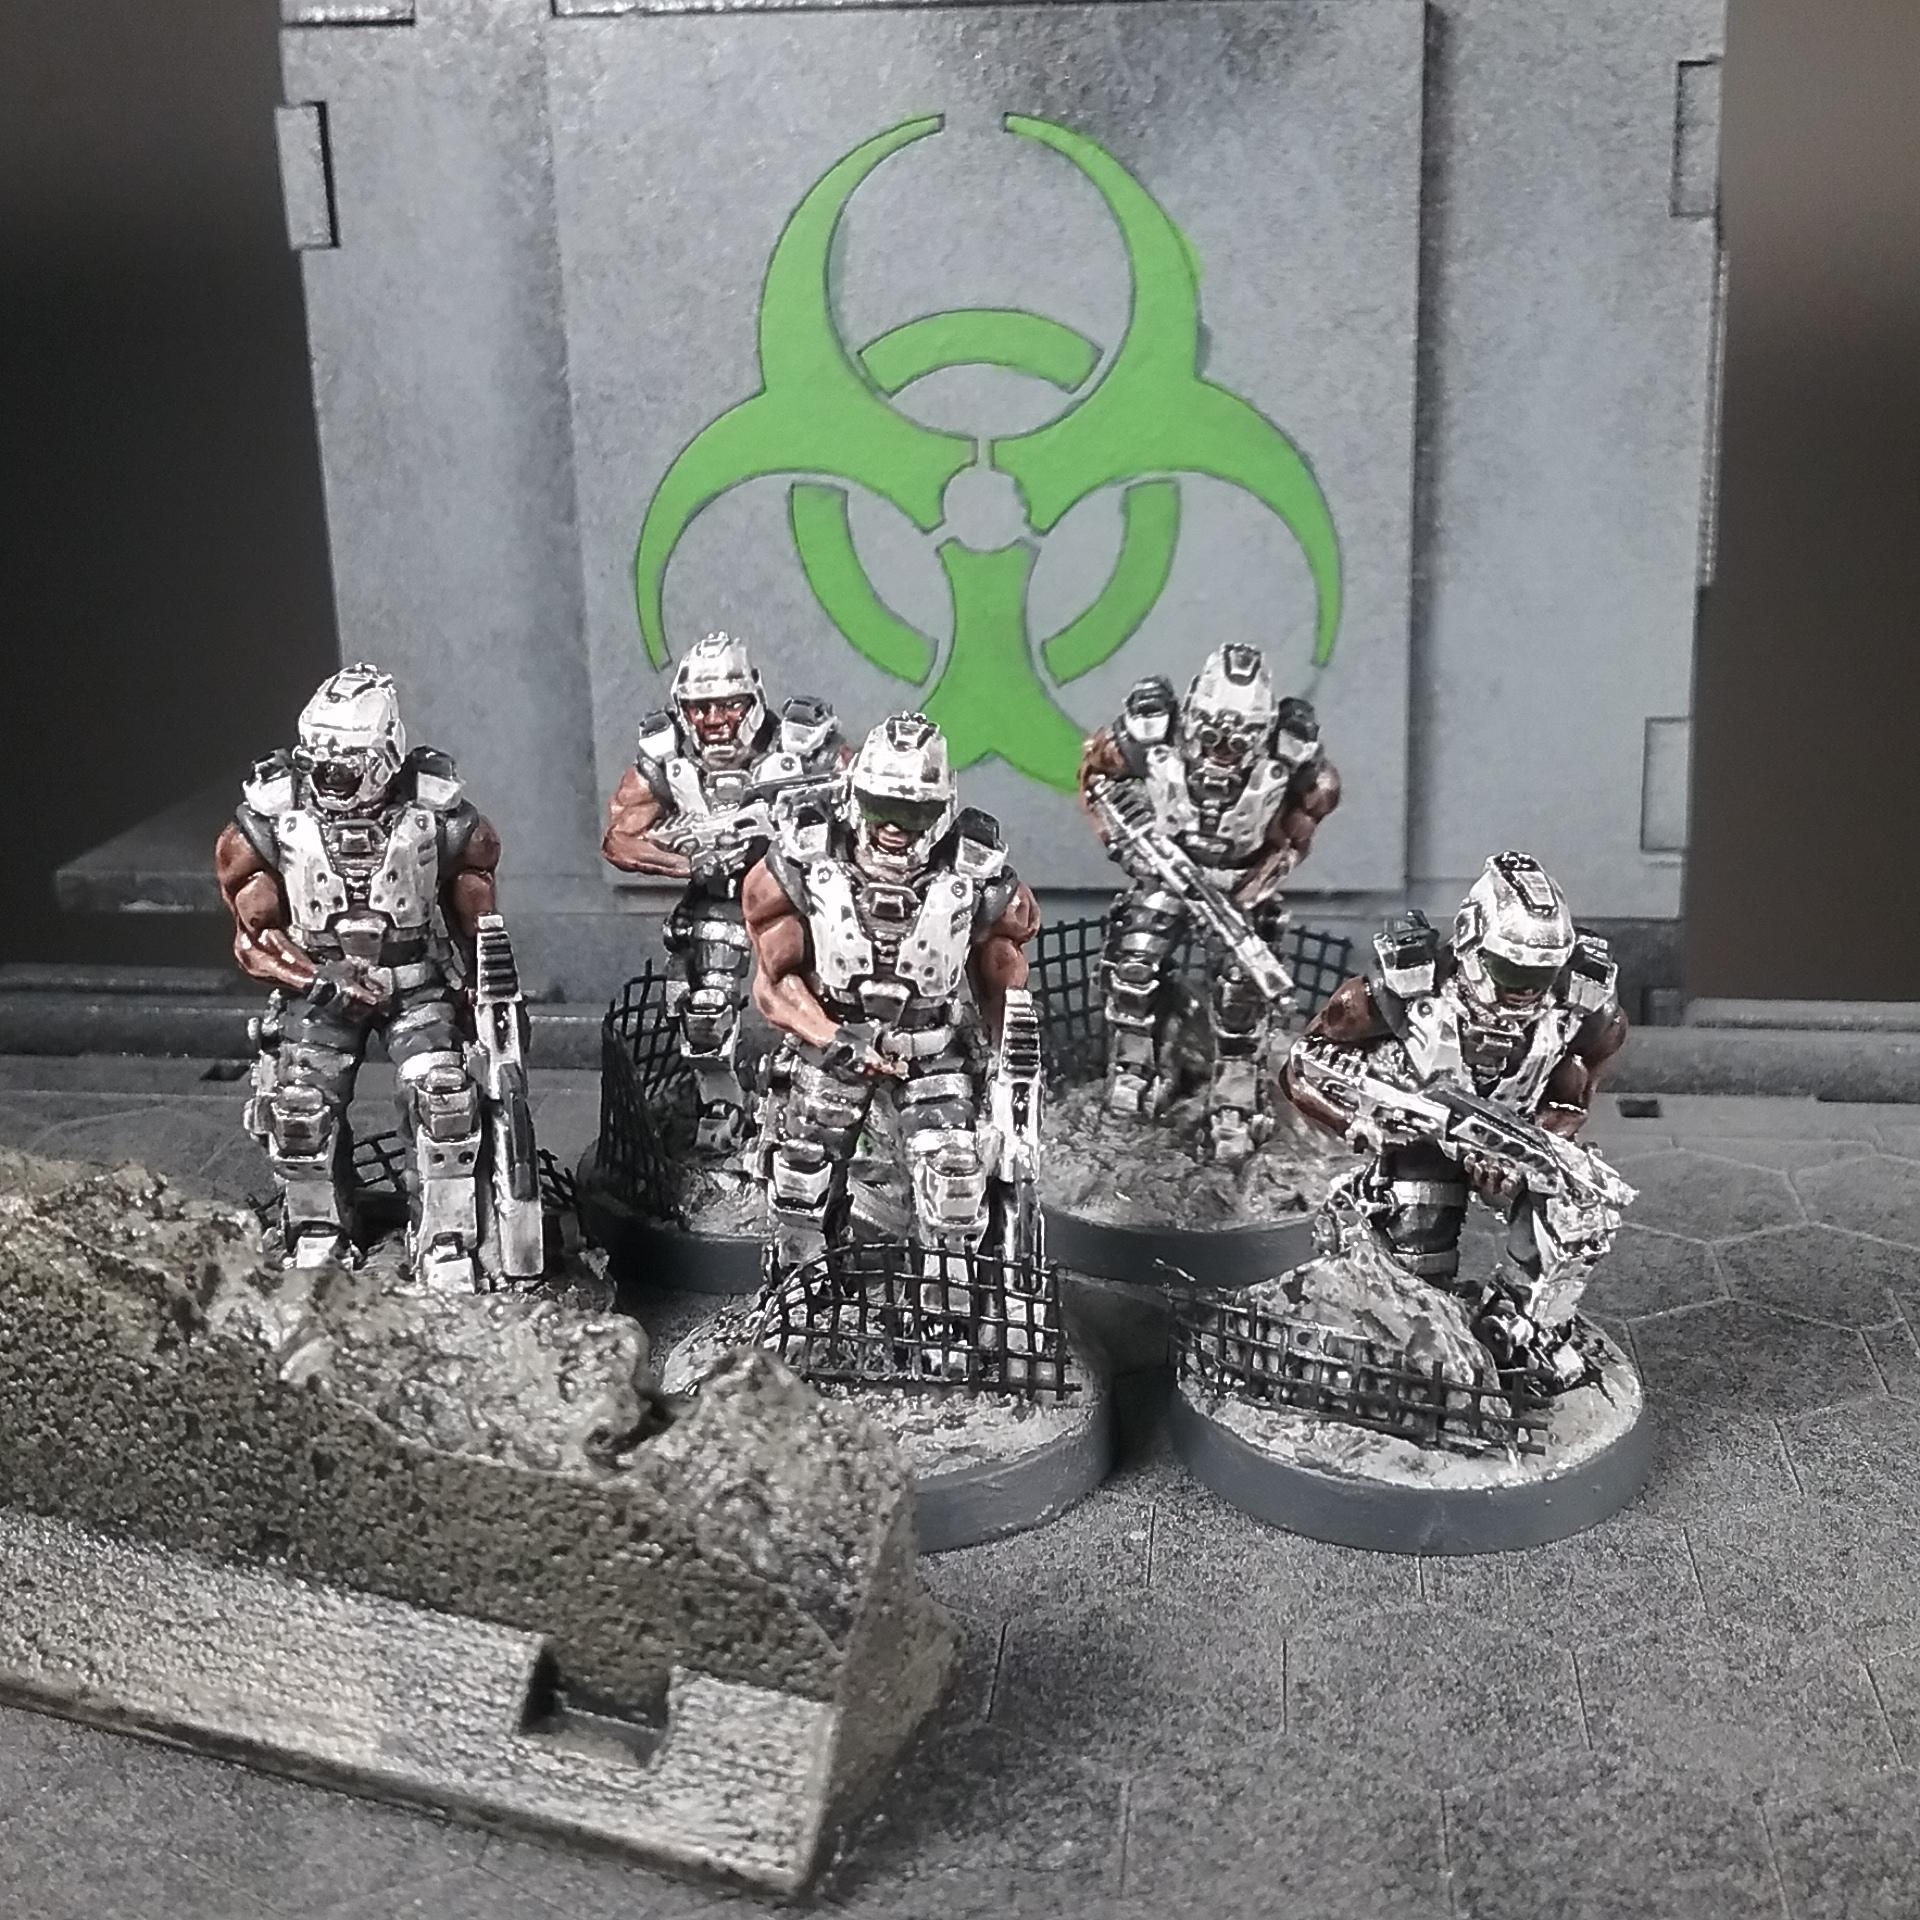 Afterlife, Titan Forge, Unity Council, Unity Council Marines, X-terra Guardians